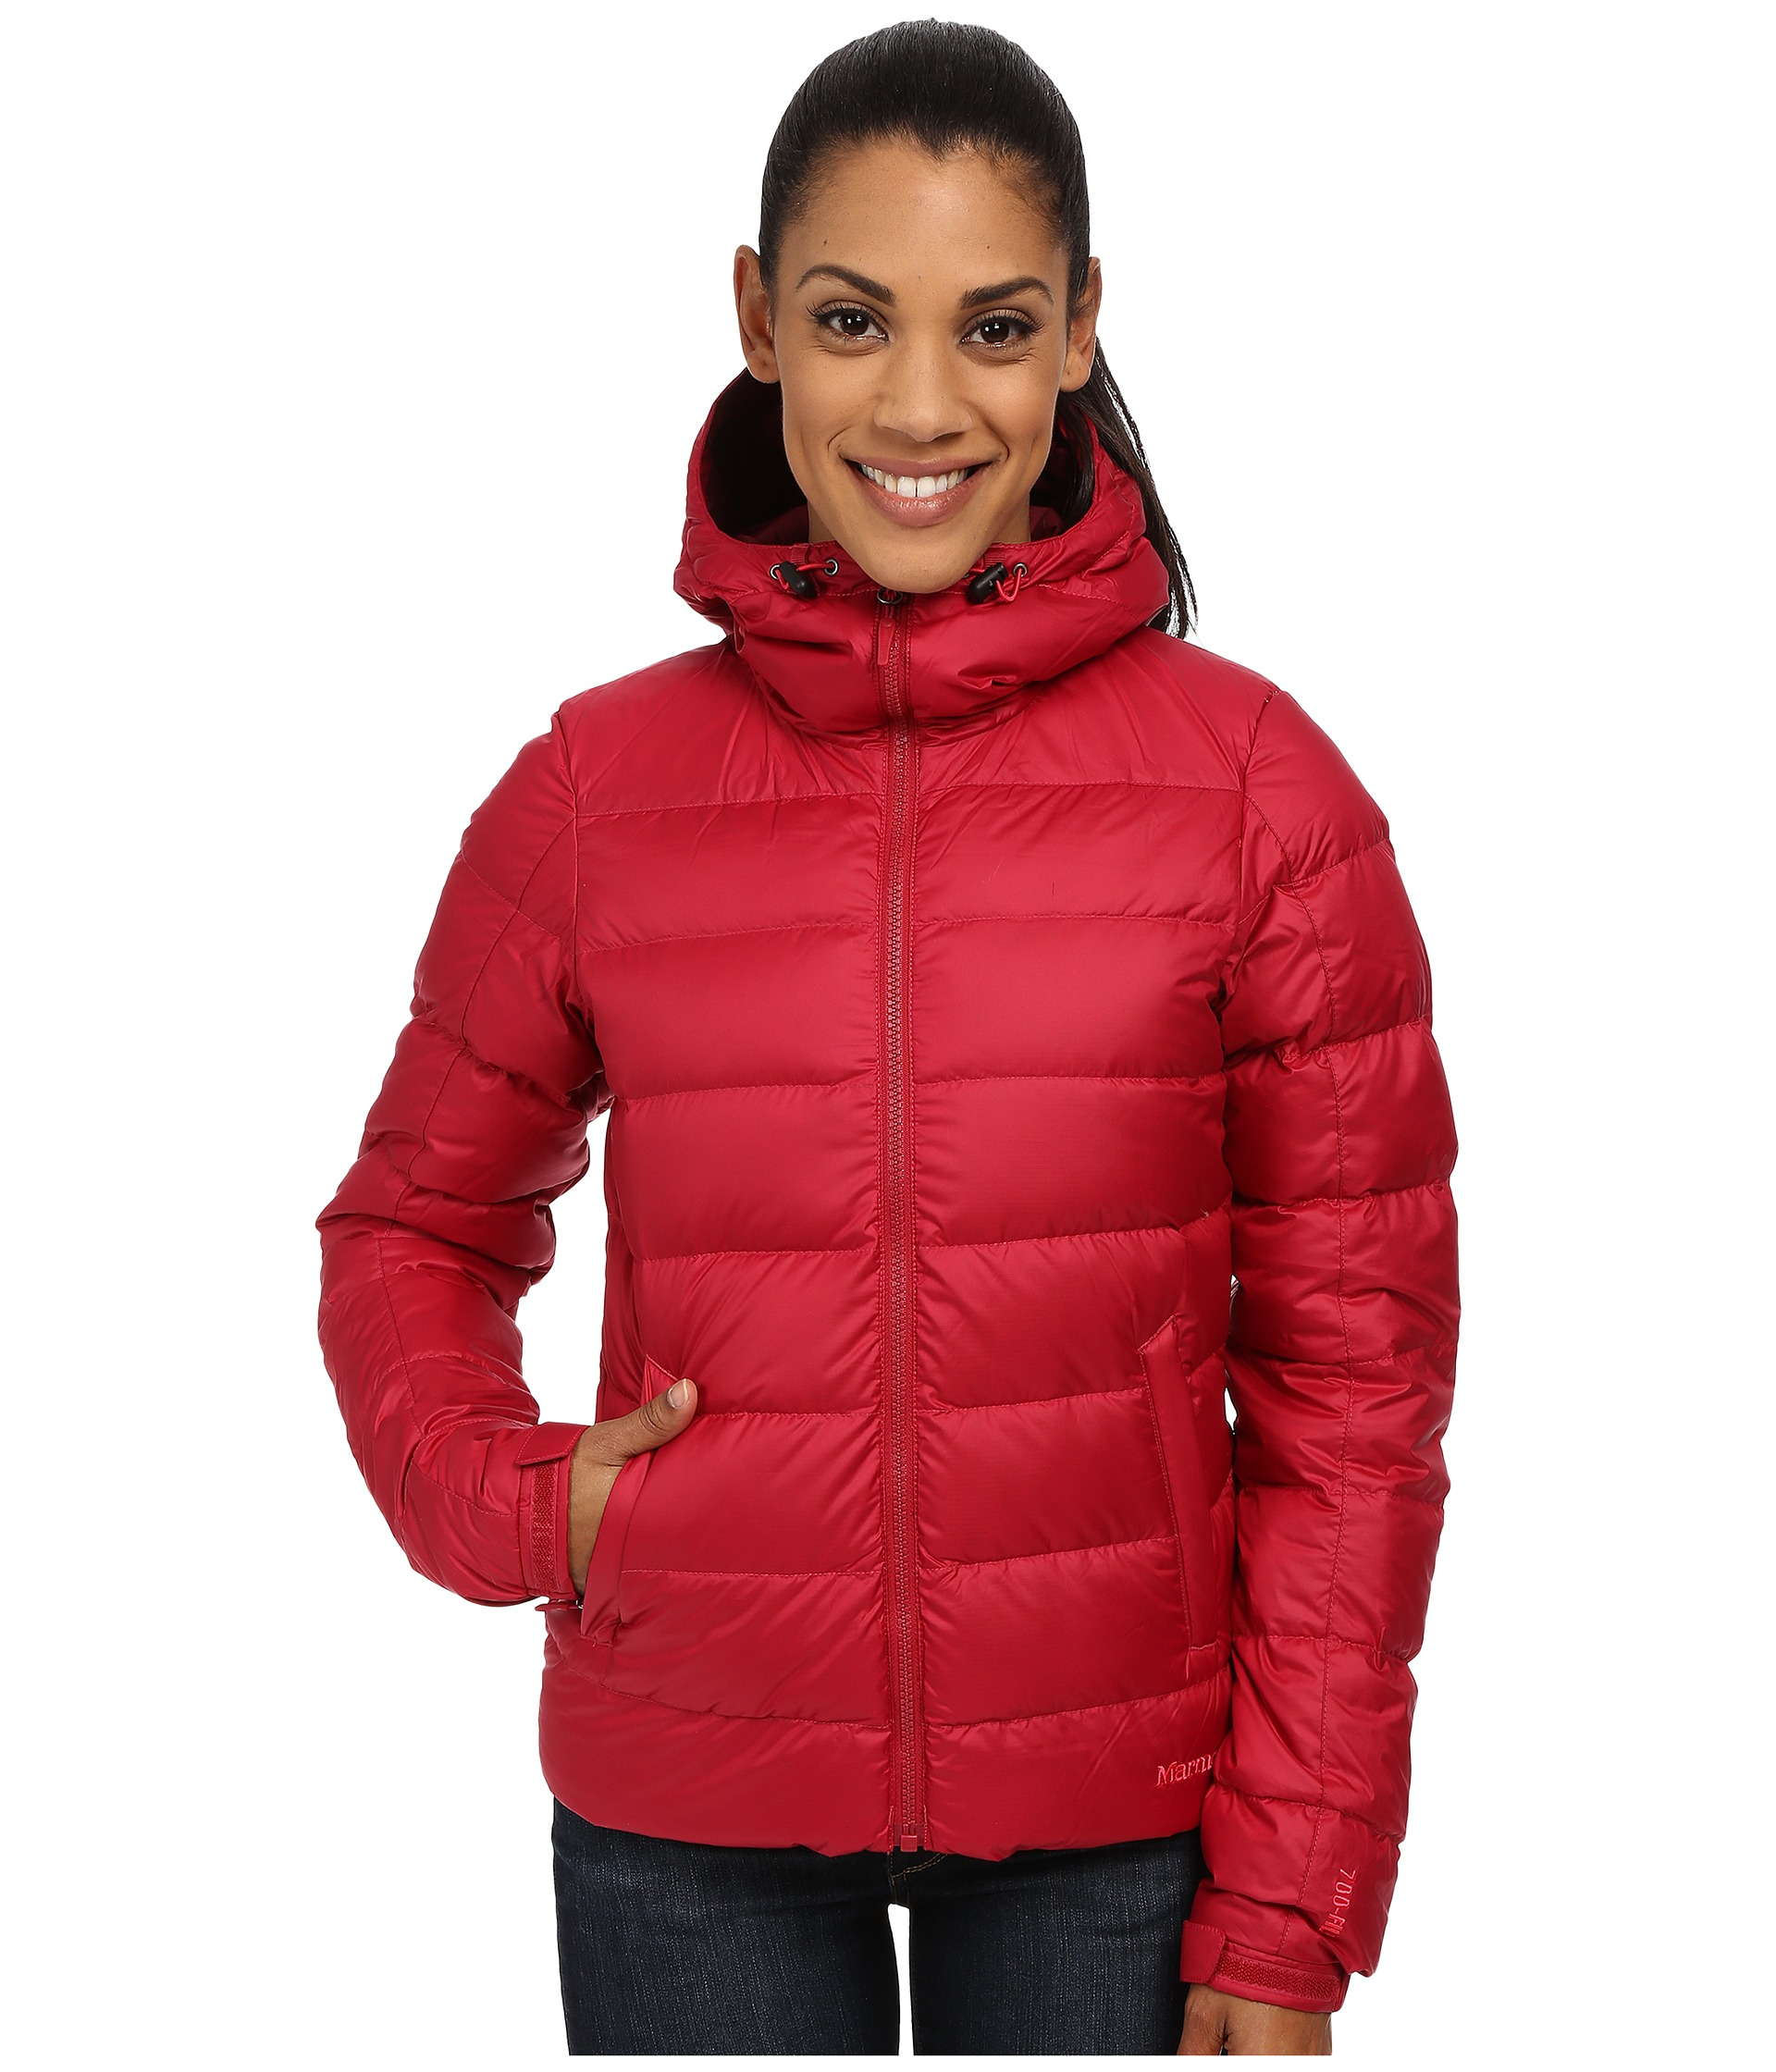 Lyst - Marmot Guides Down Hoodie in Red a0b2cac6f9